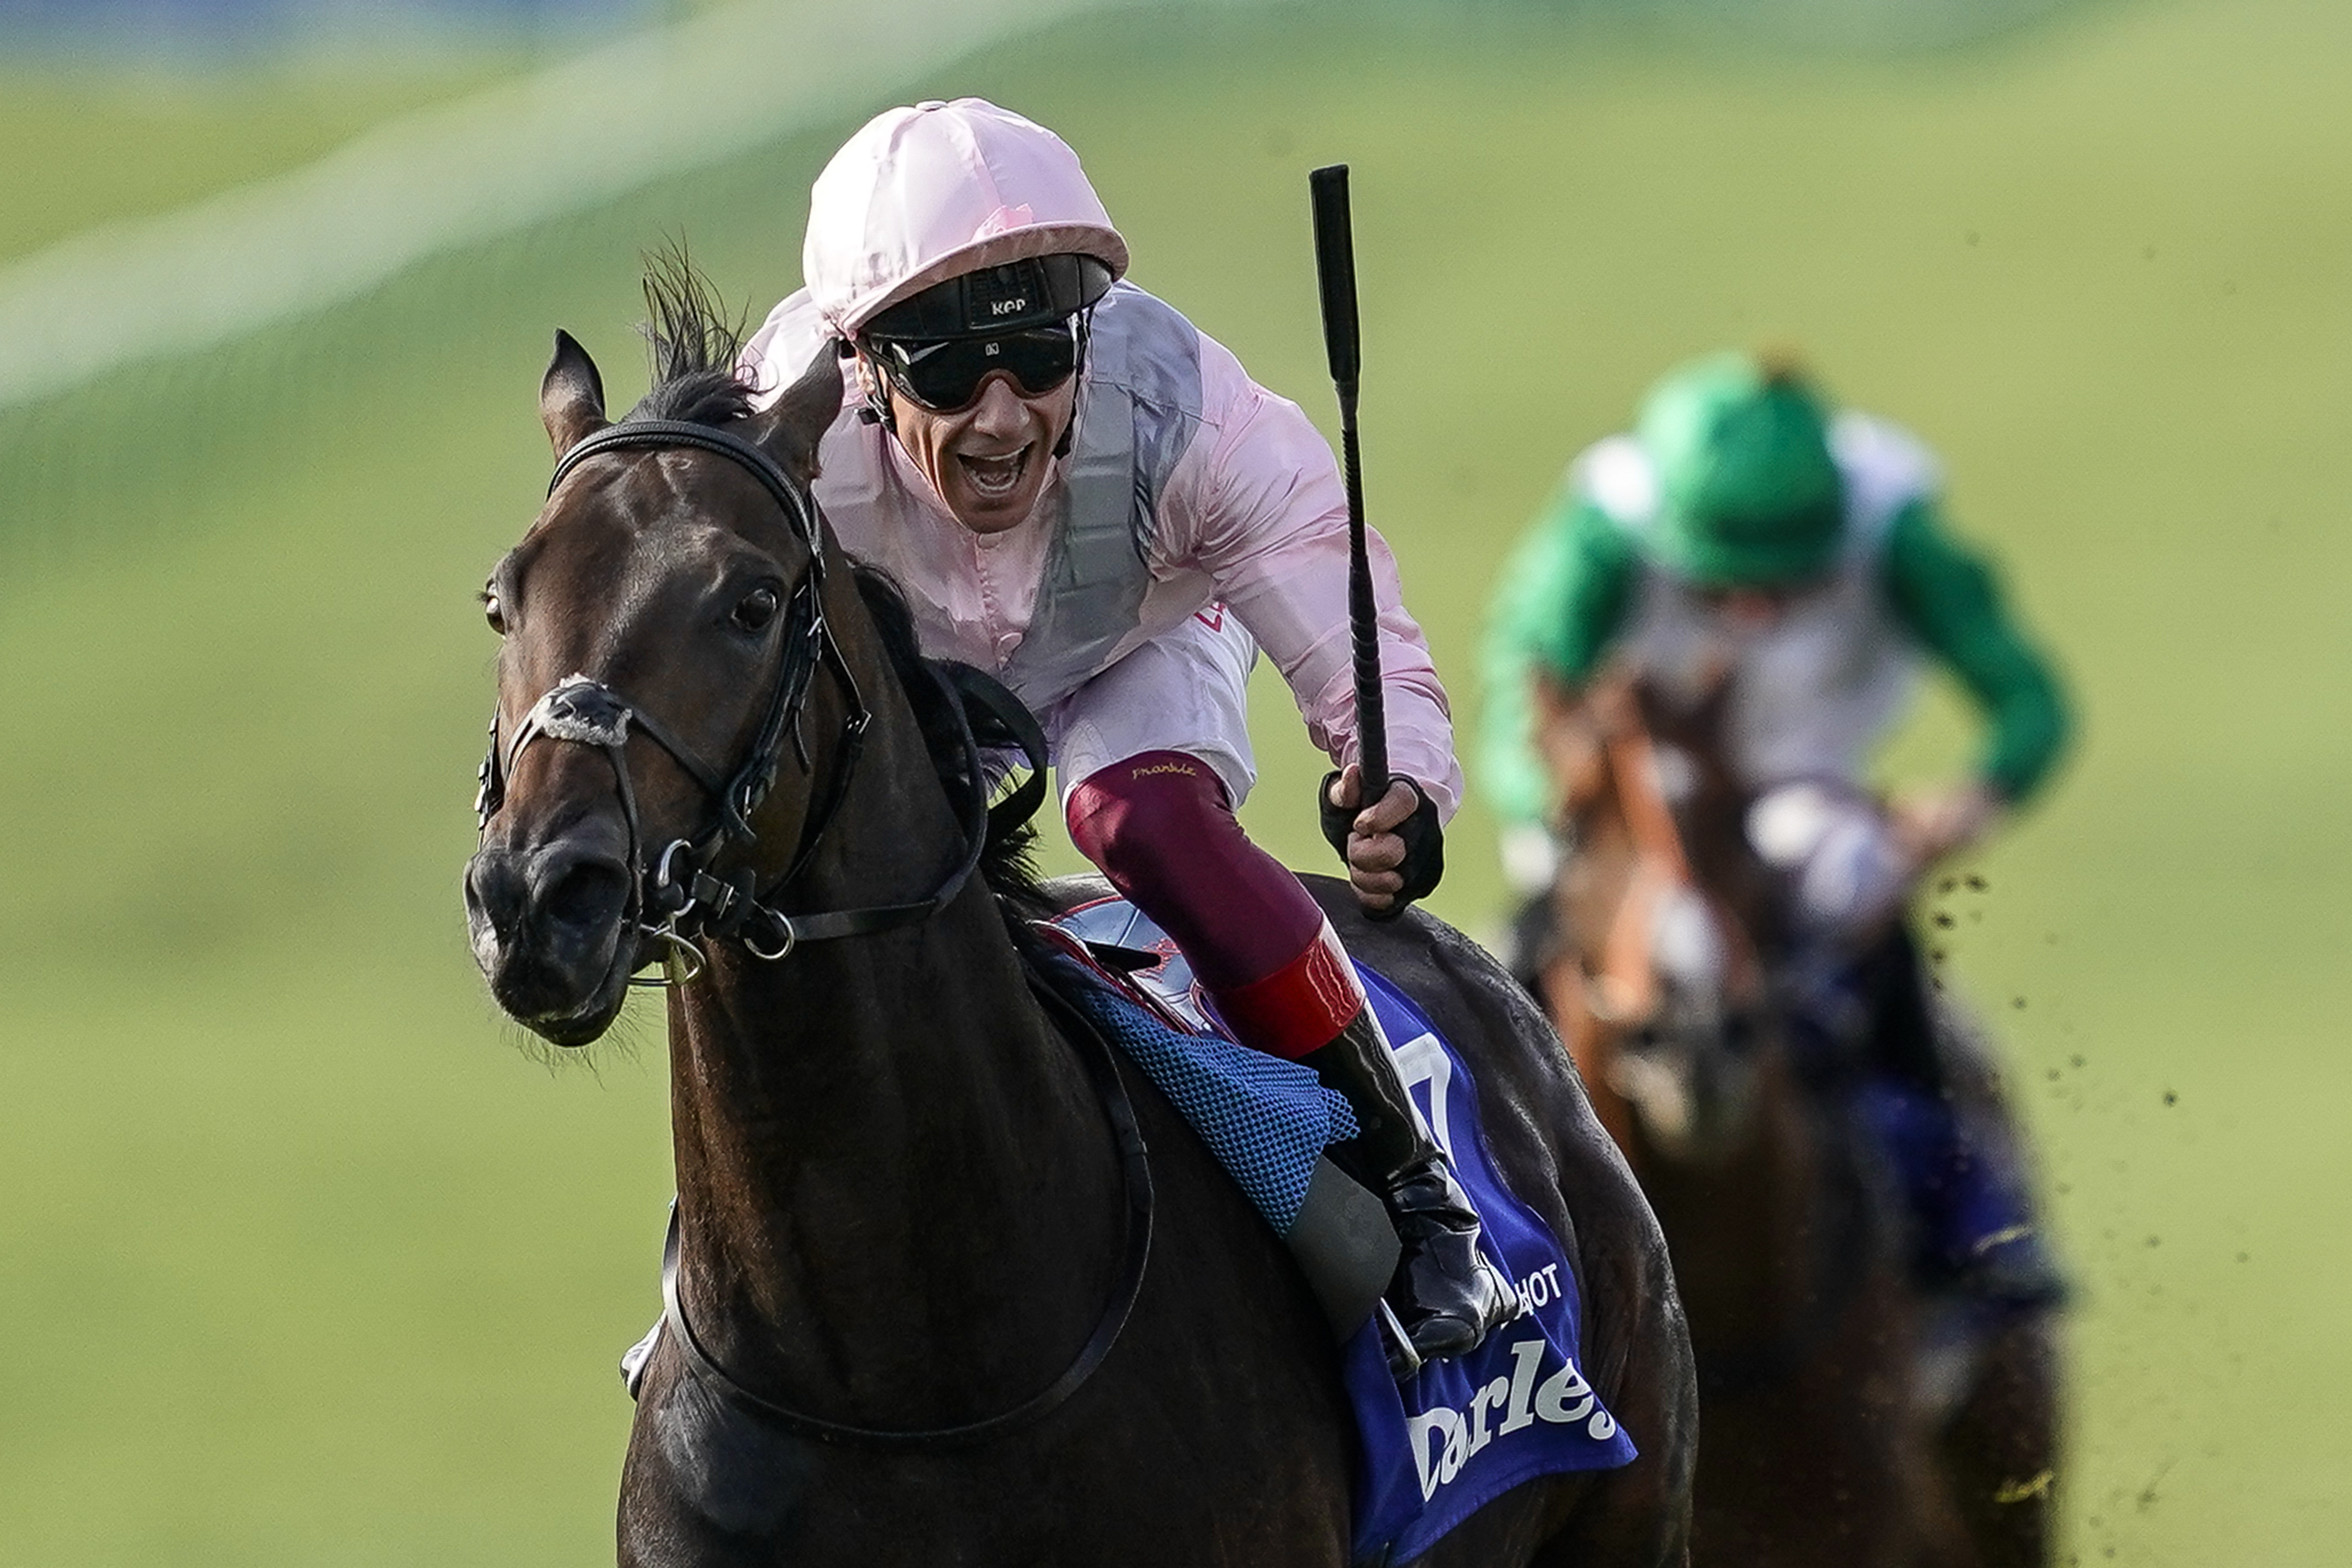 Horse Racing Betting Tips: Dettori to prove Too Darn Hot at Ascot once again